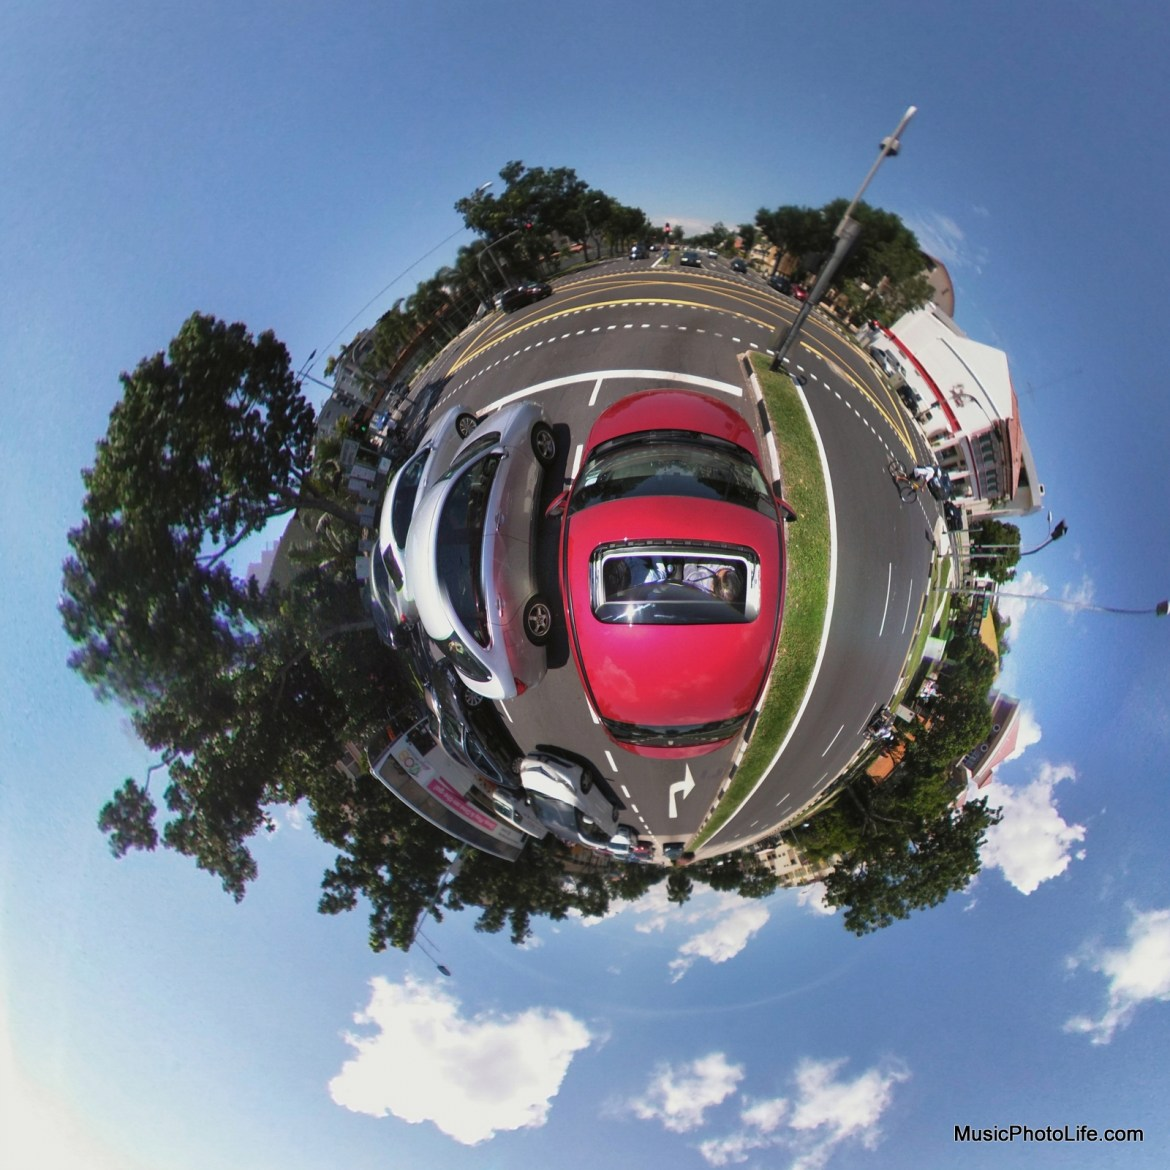 LG 360 CAM - little planet